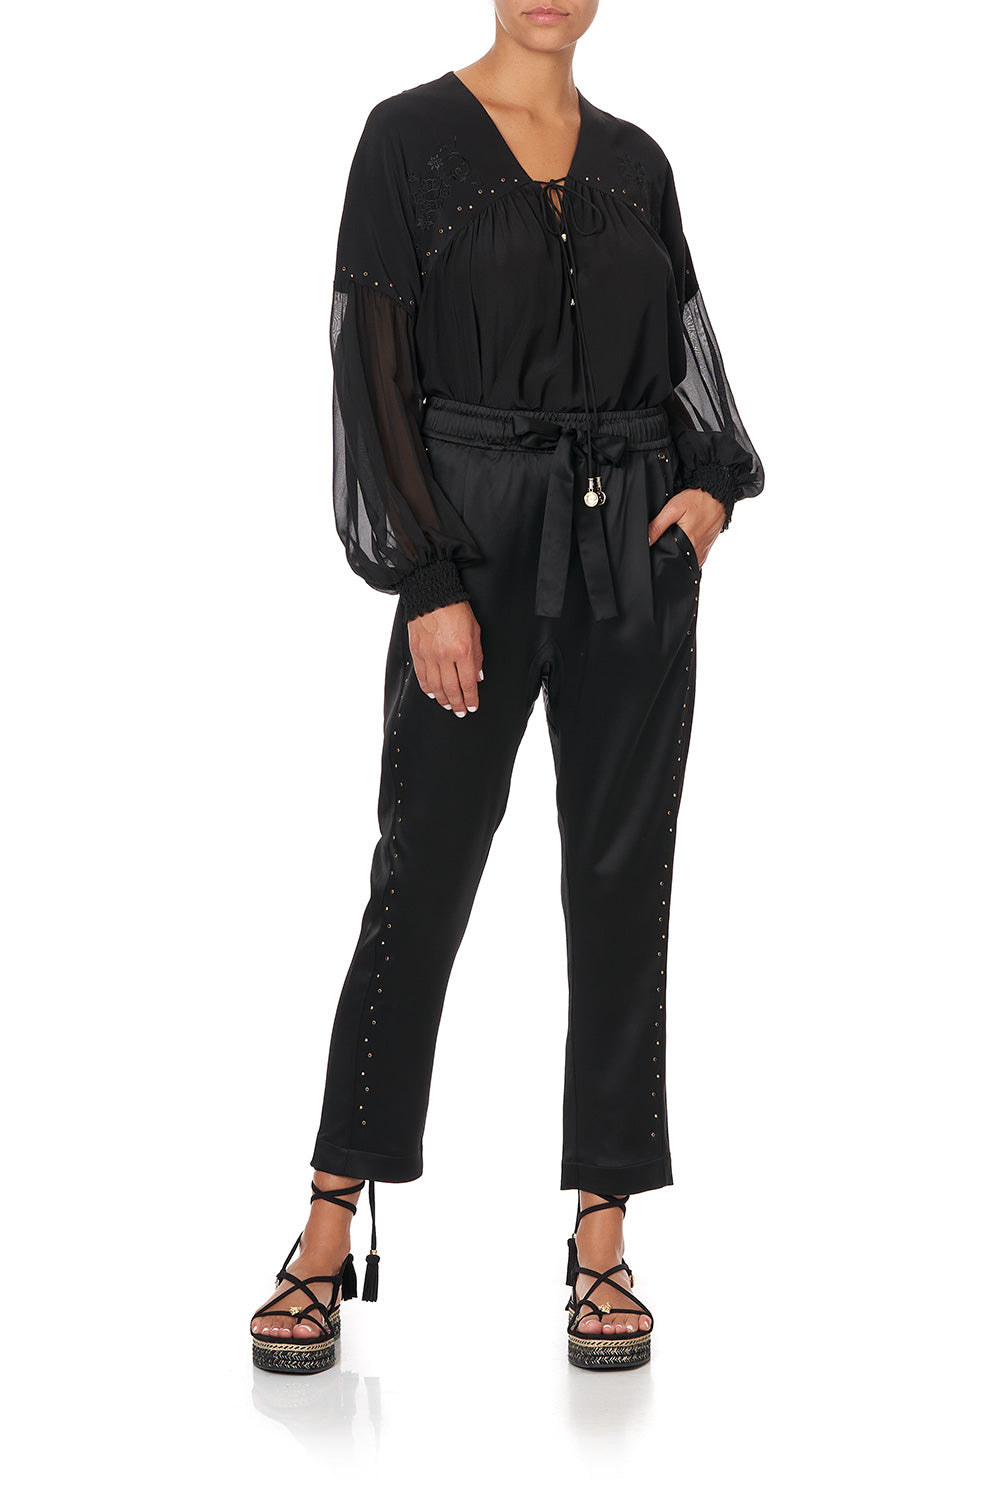 BLOUSON BLOUSE WITH NECK TIE SOLID BLACK